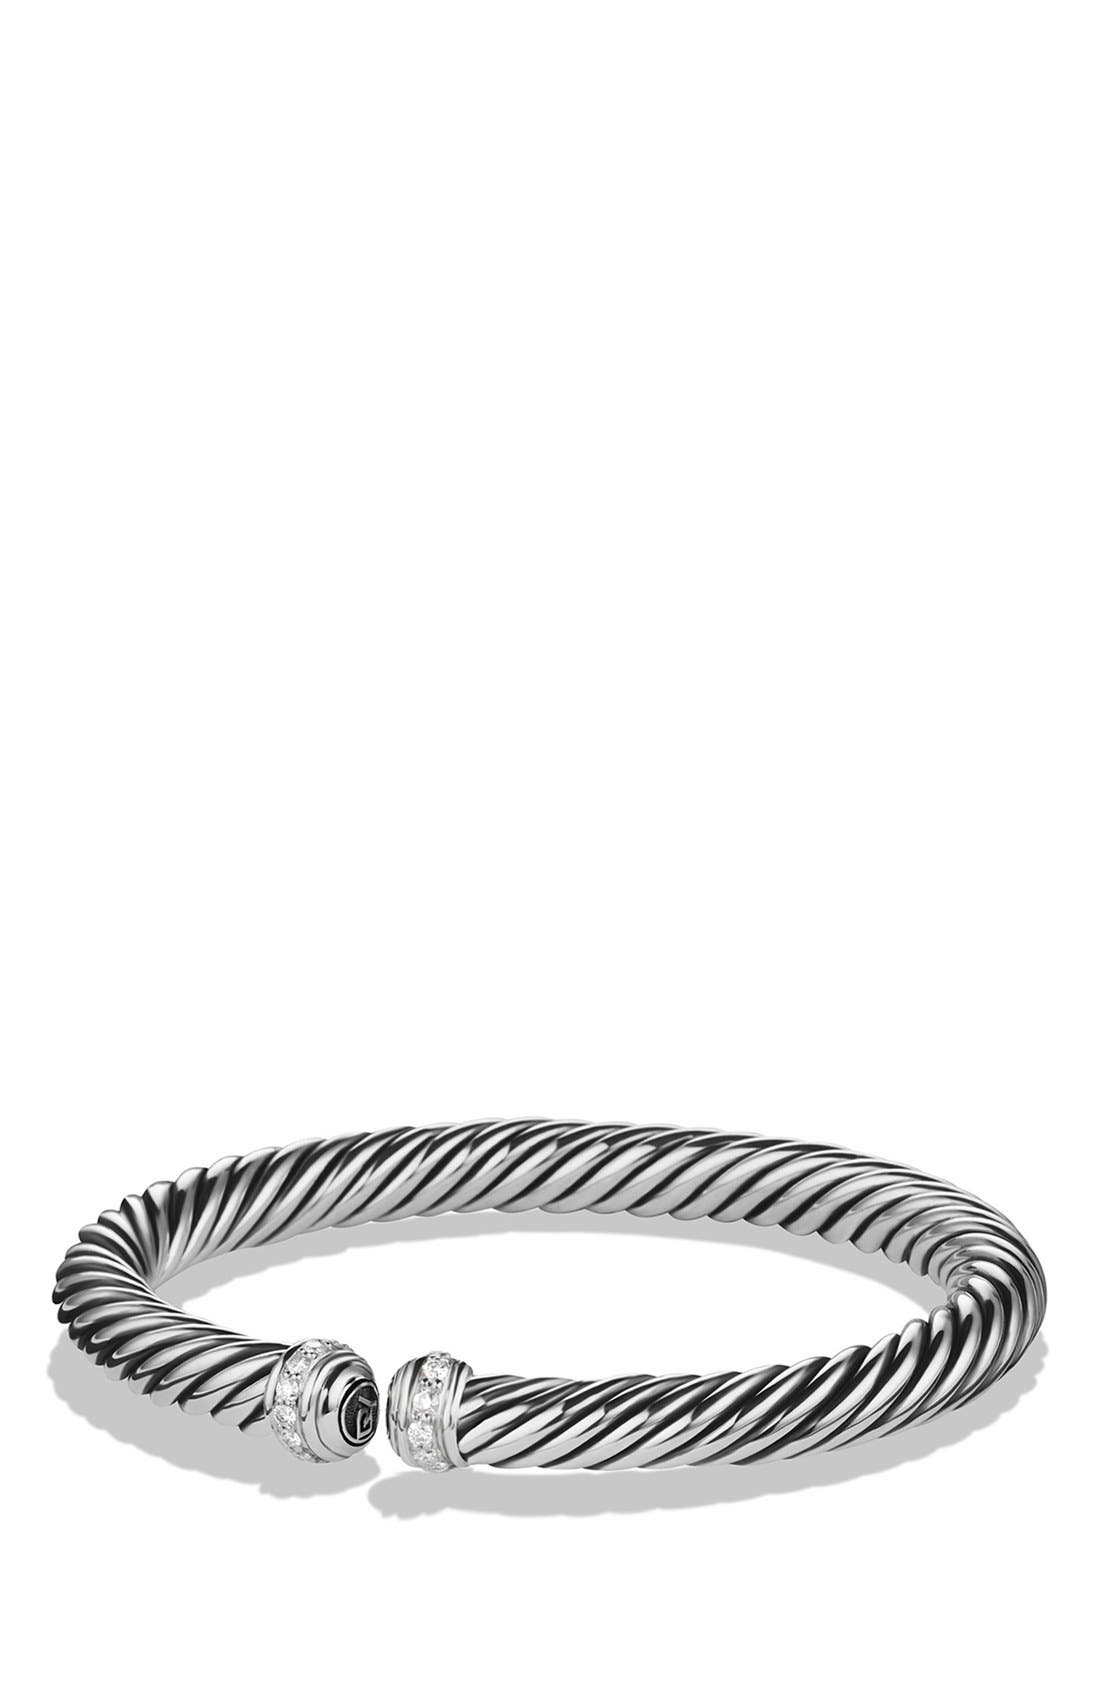 Main Image - David Yurman 'Cable Classics' Cable Spira Bracelet with Diamonds